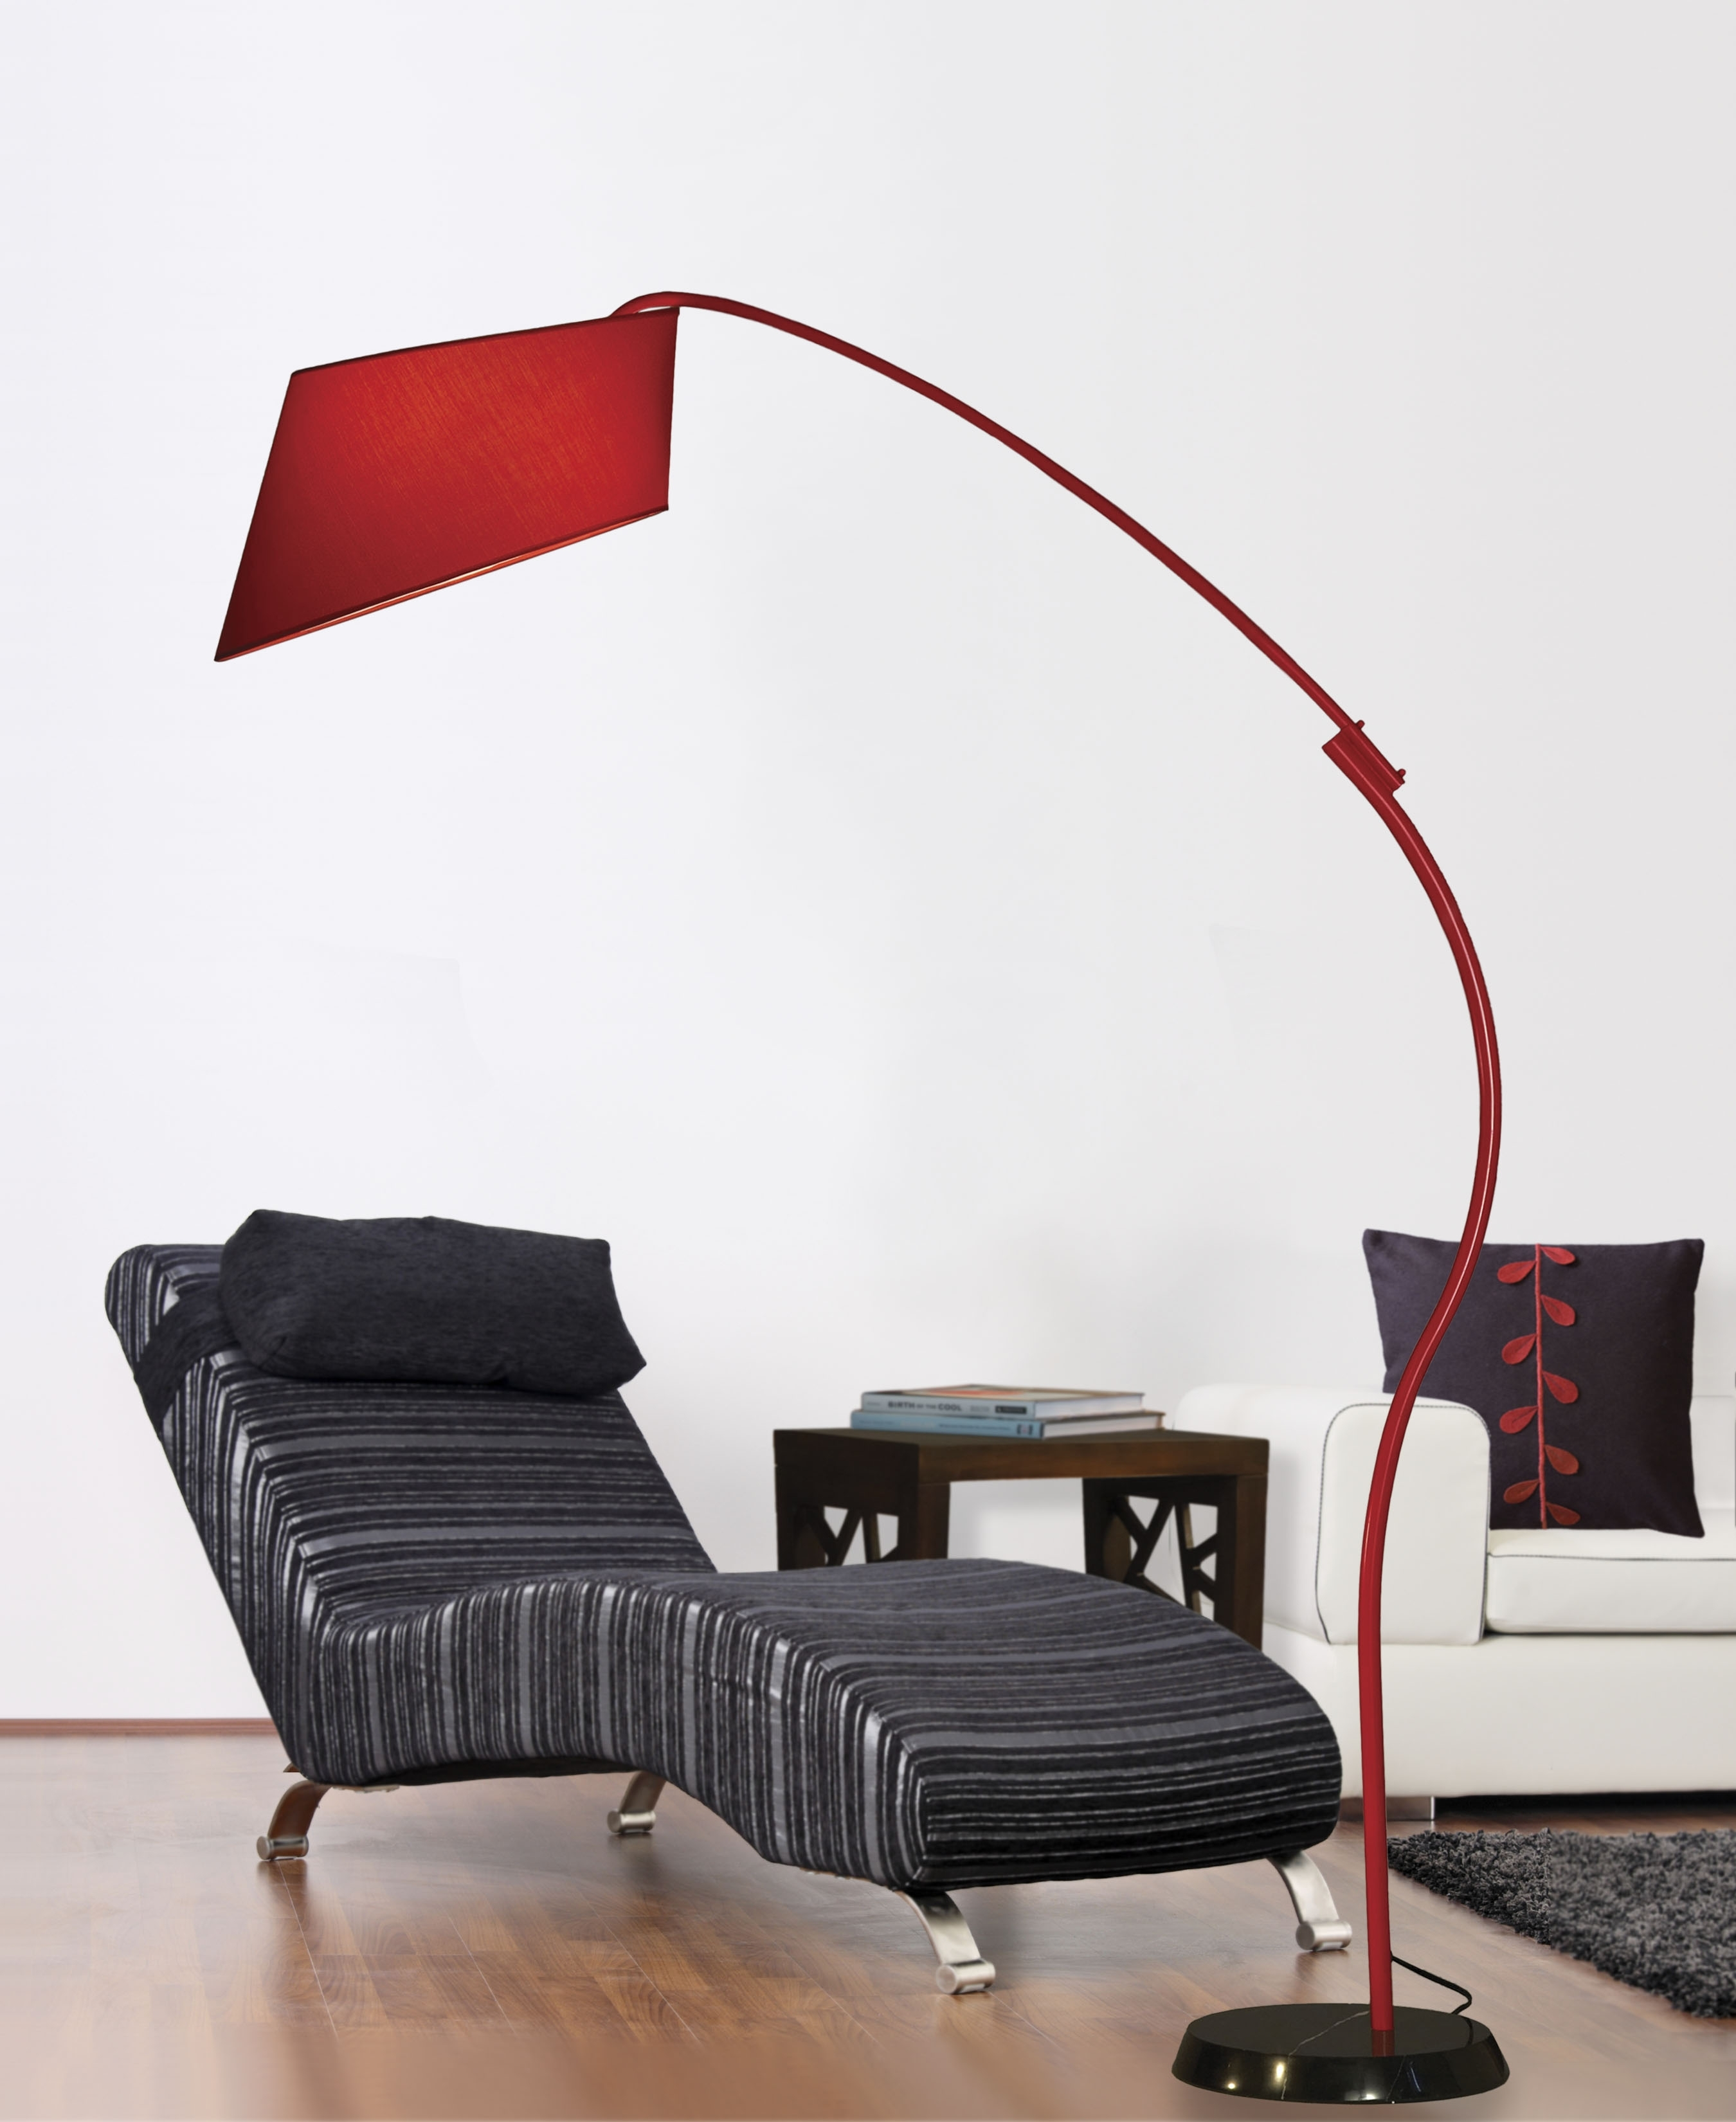 Pleasant Red Arc Floor Lamp Set For Bathroom Accessories Charming Intended For Red Living Room Table Lamps (View 4 of 15)